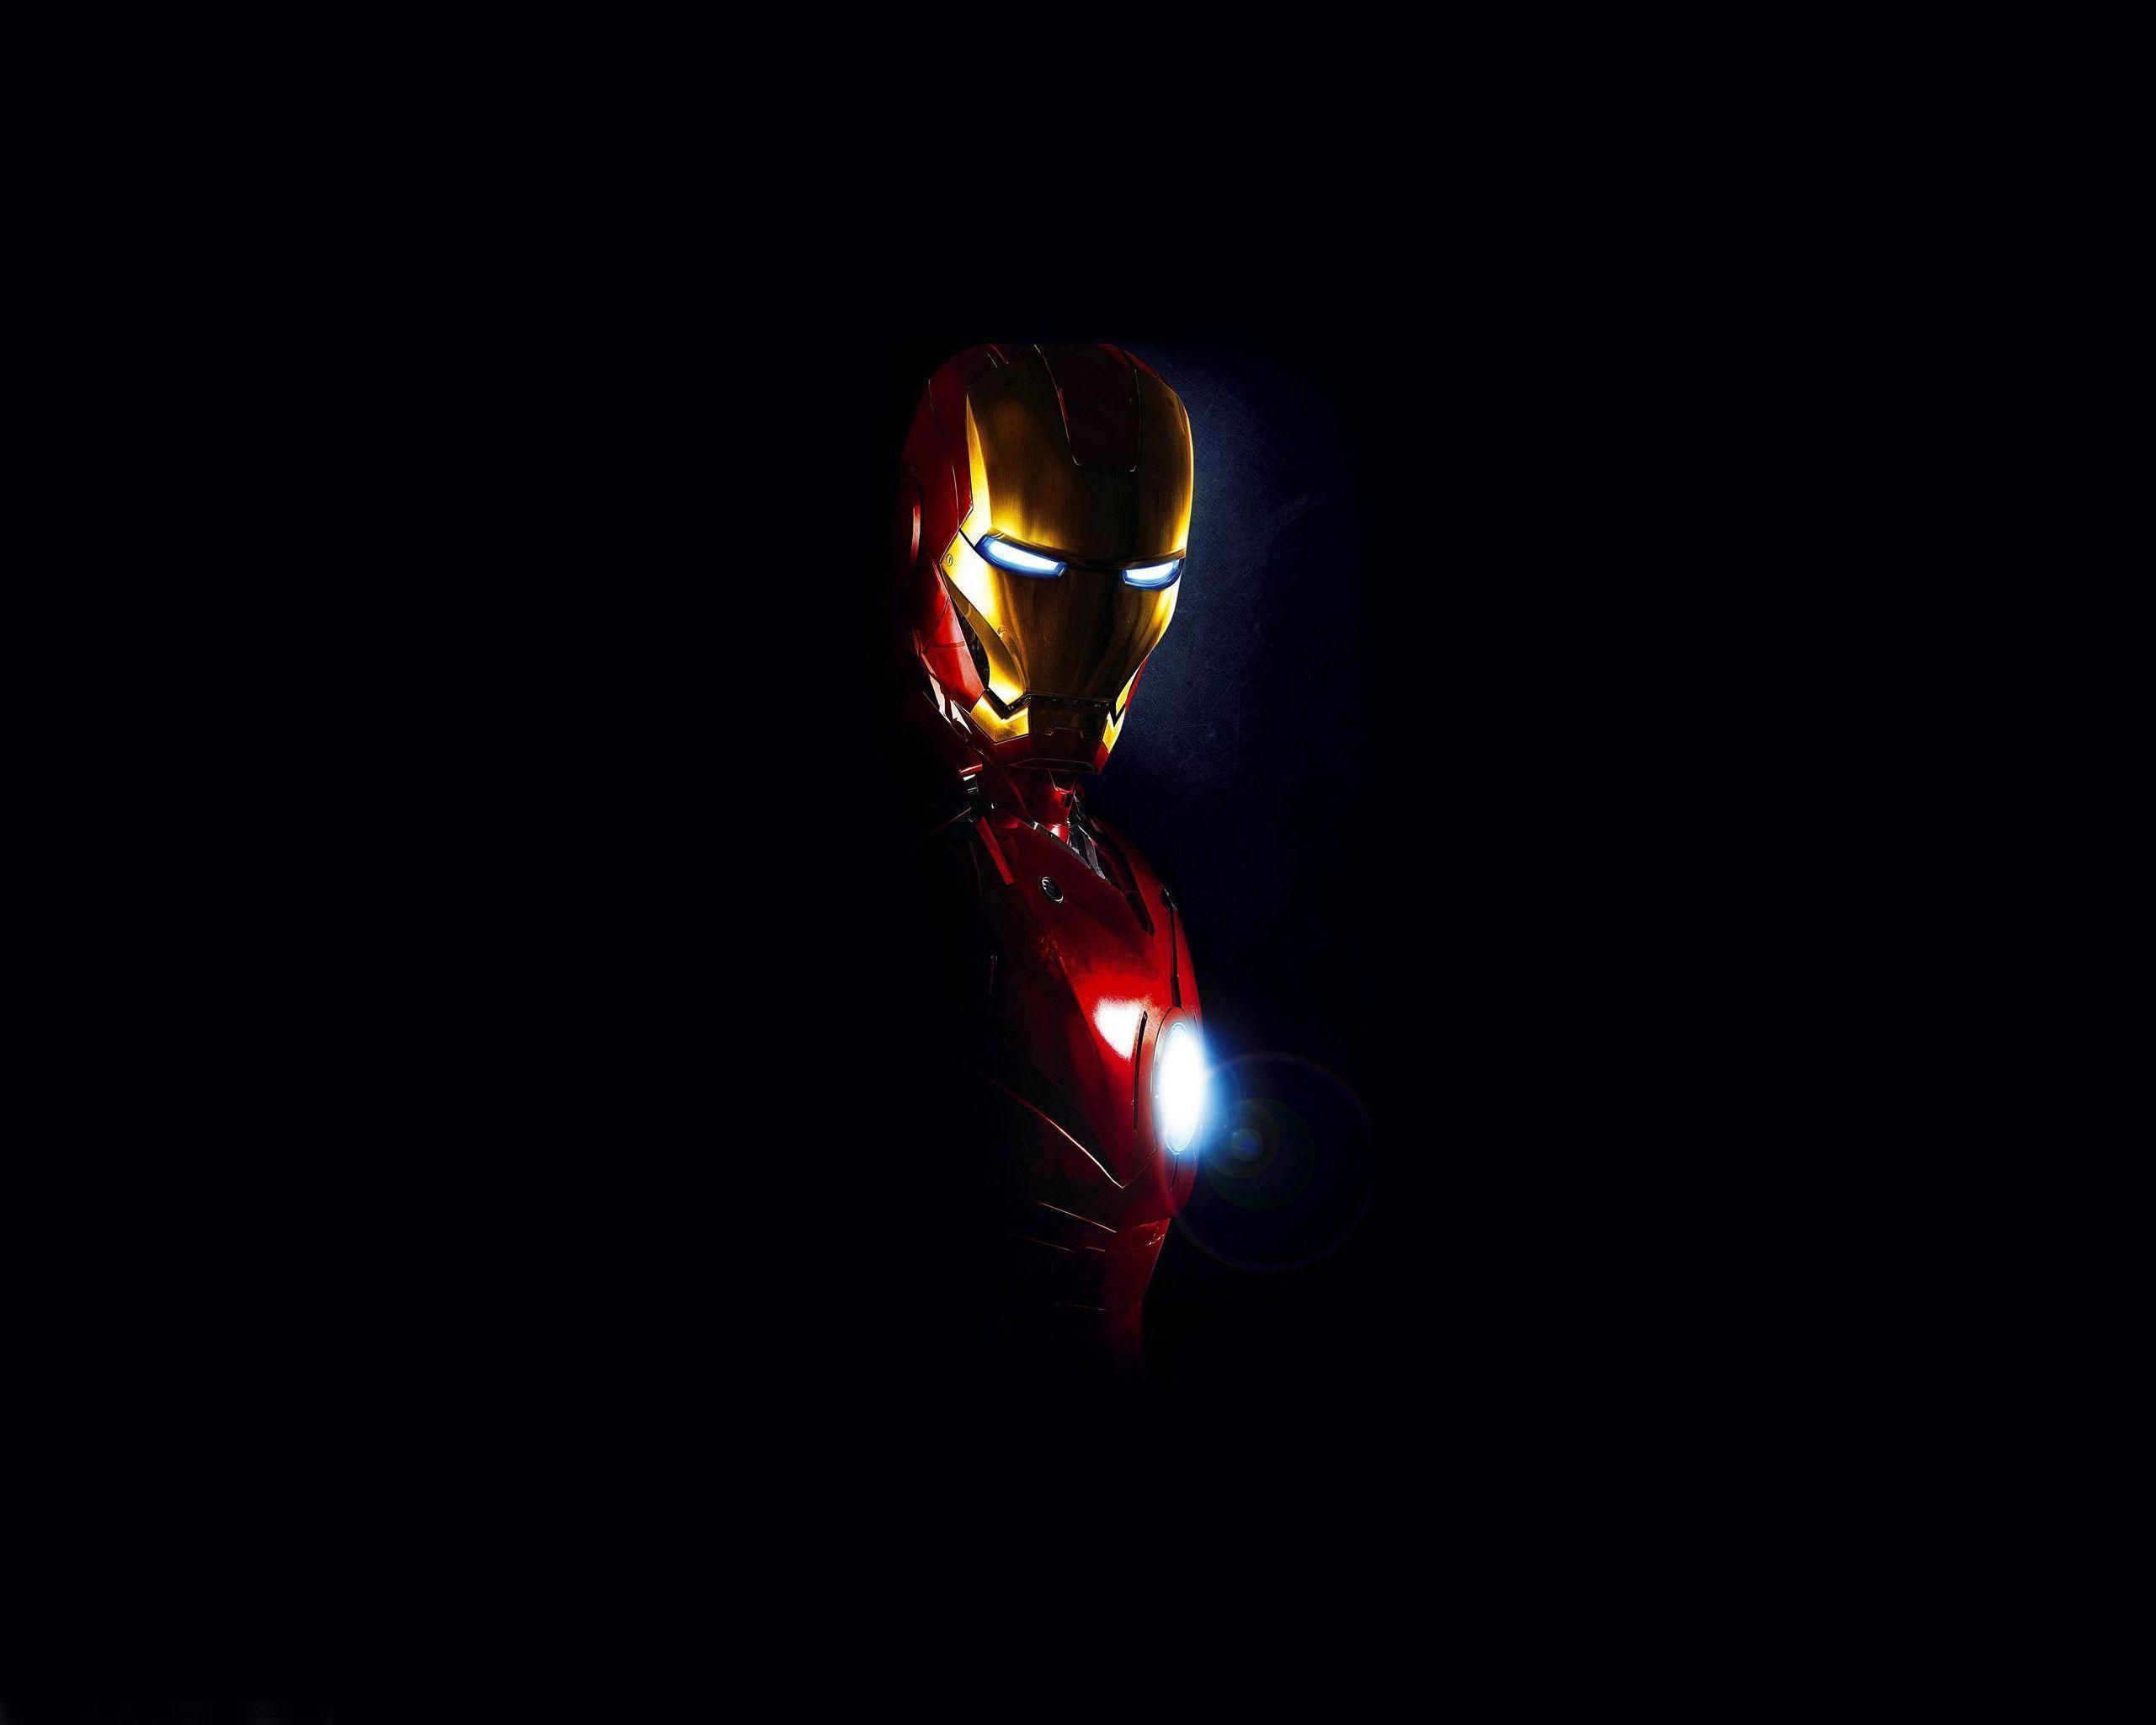 Iron Man 3 Hd Wallpapers For Desktop Wallpaper | HDMarvelWallpaper